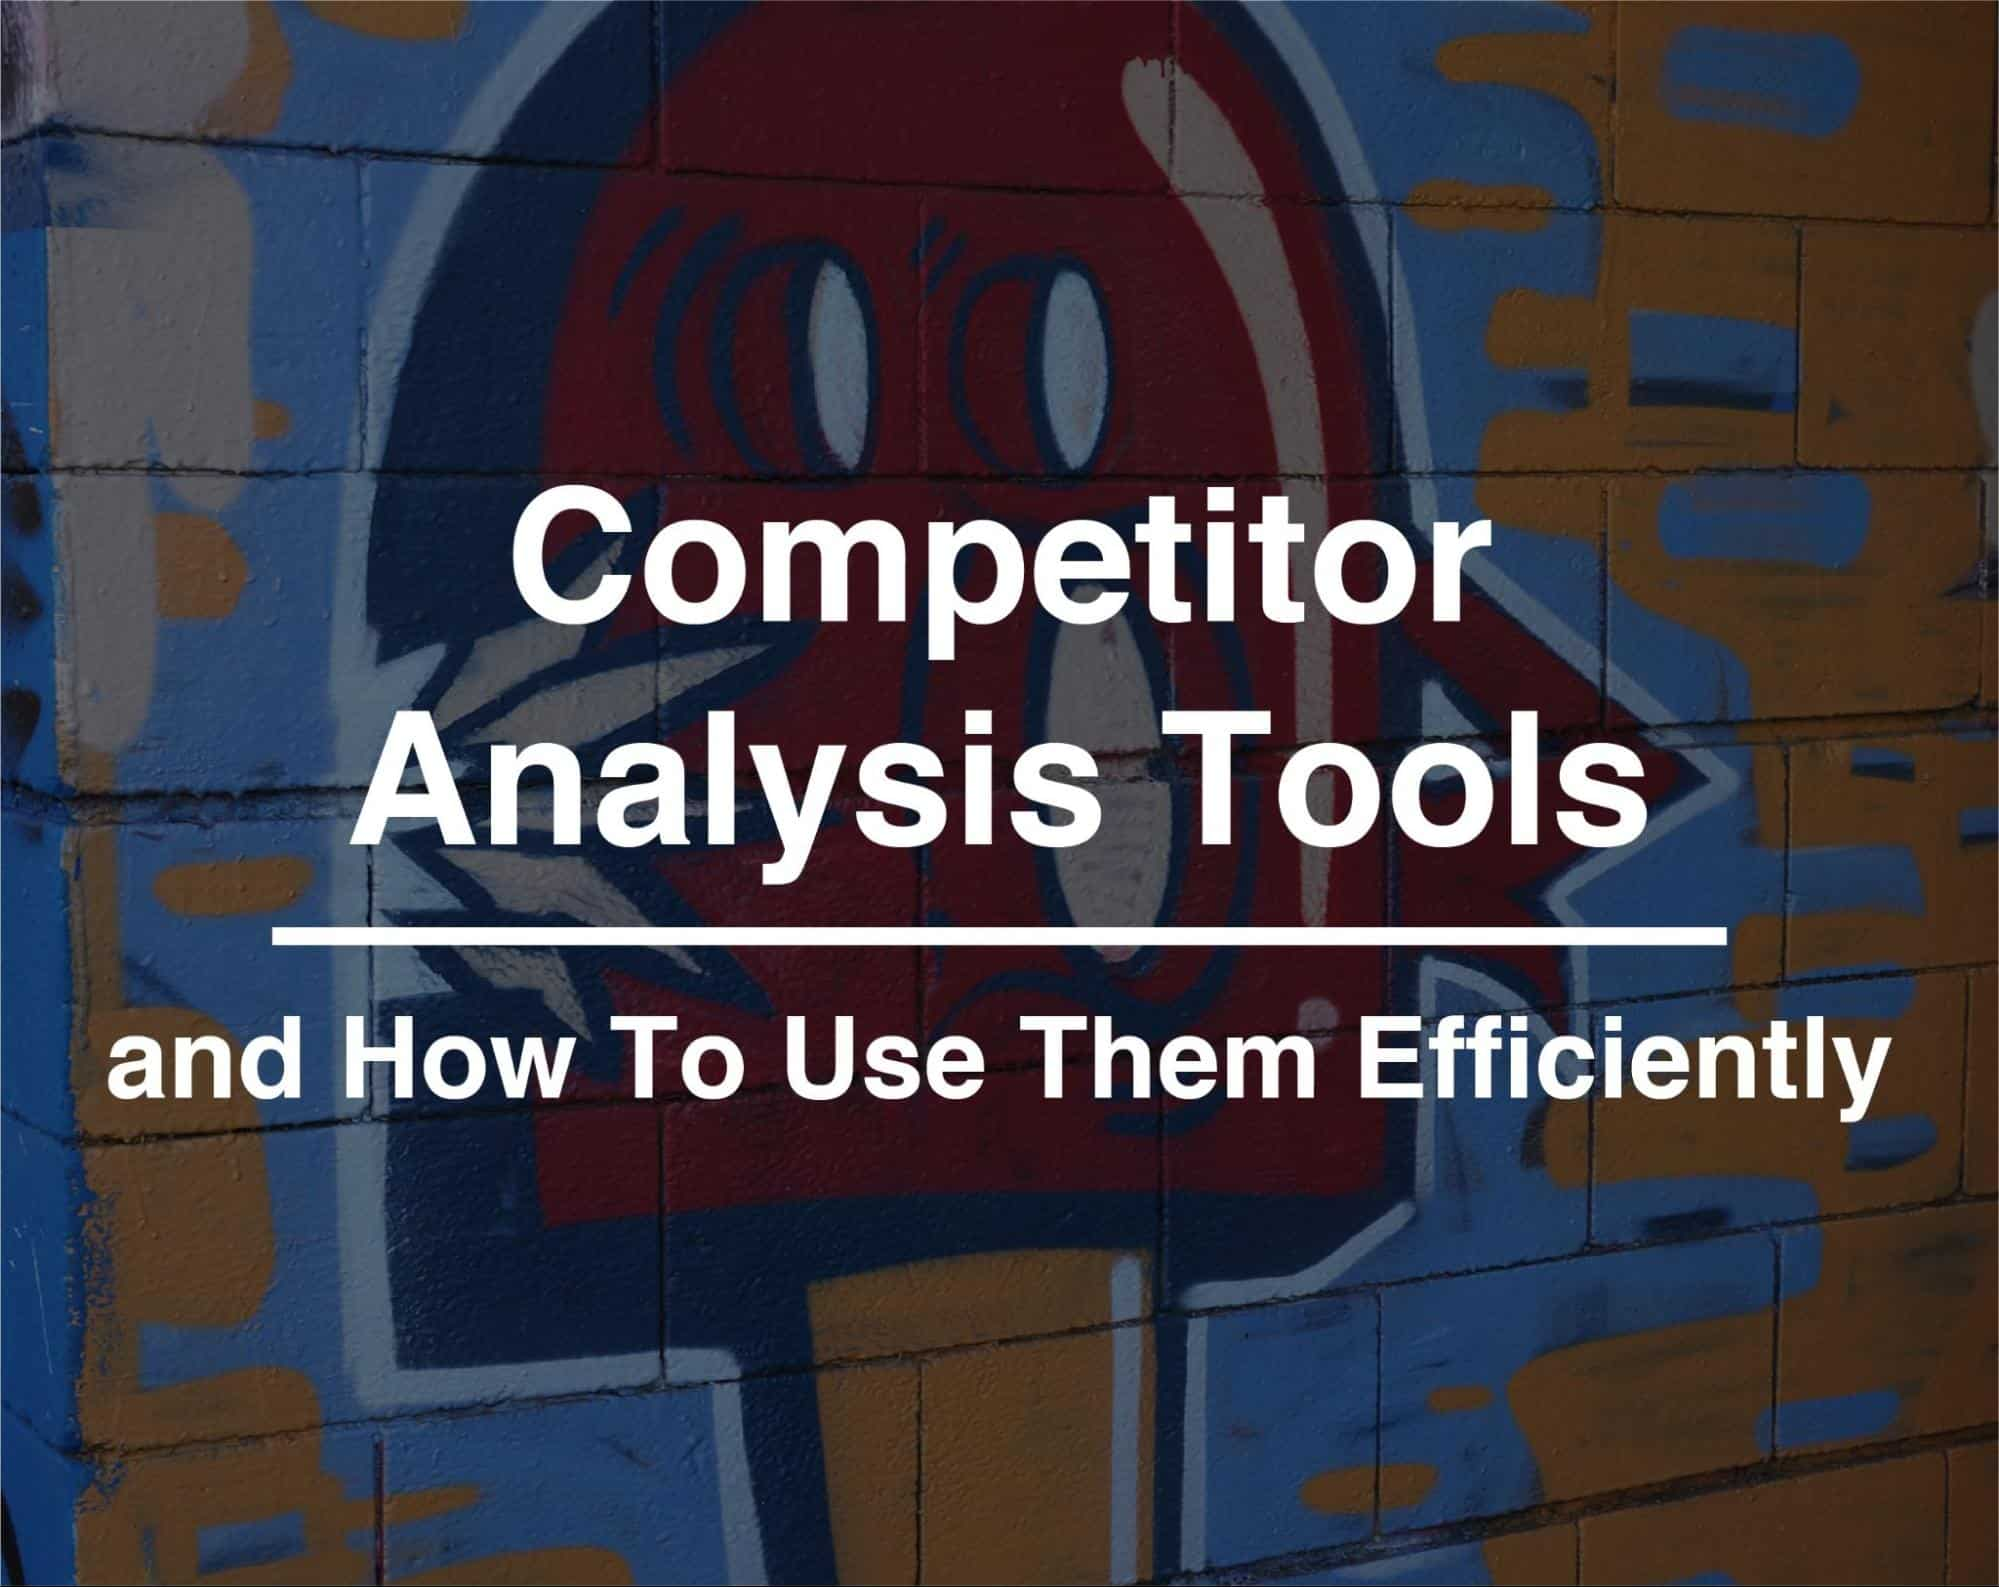 How To Use Competitor Analysis Tools Efficiently